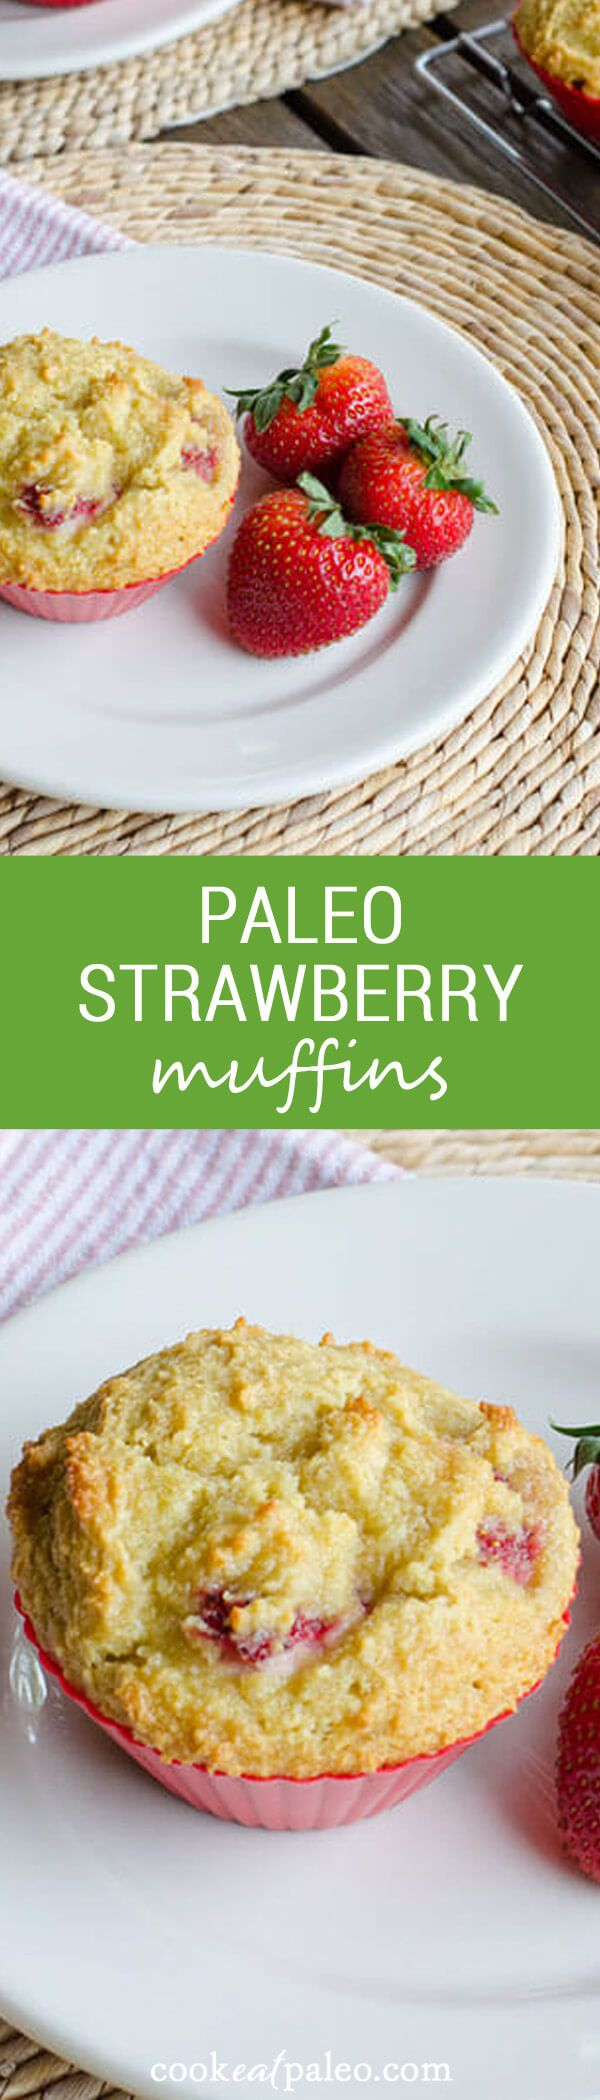 These gluten-free, grain-free strawberry paleo muffins are perfect for breakfast or an afternoon snack — a great way to use fresh strawberries this season. ~ http://cookeatpaleo.com